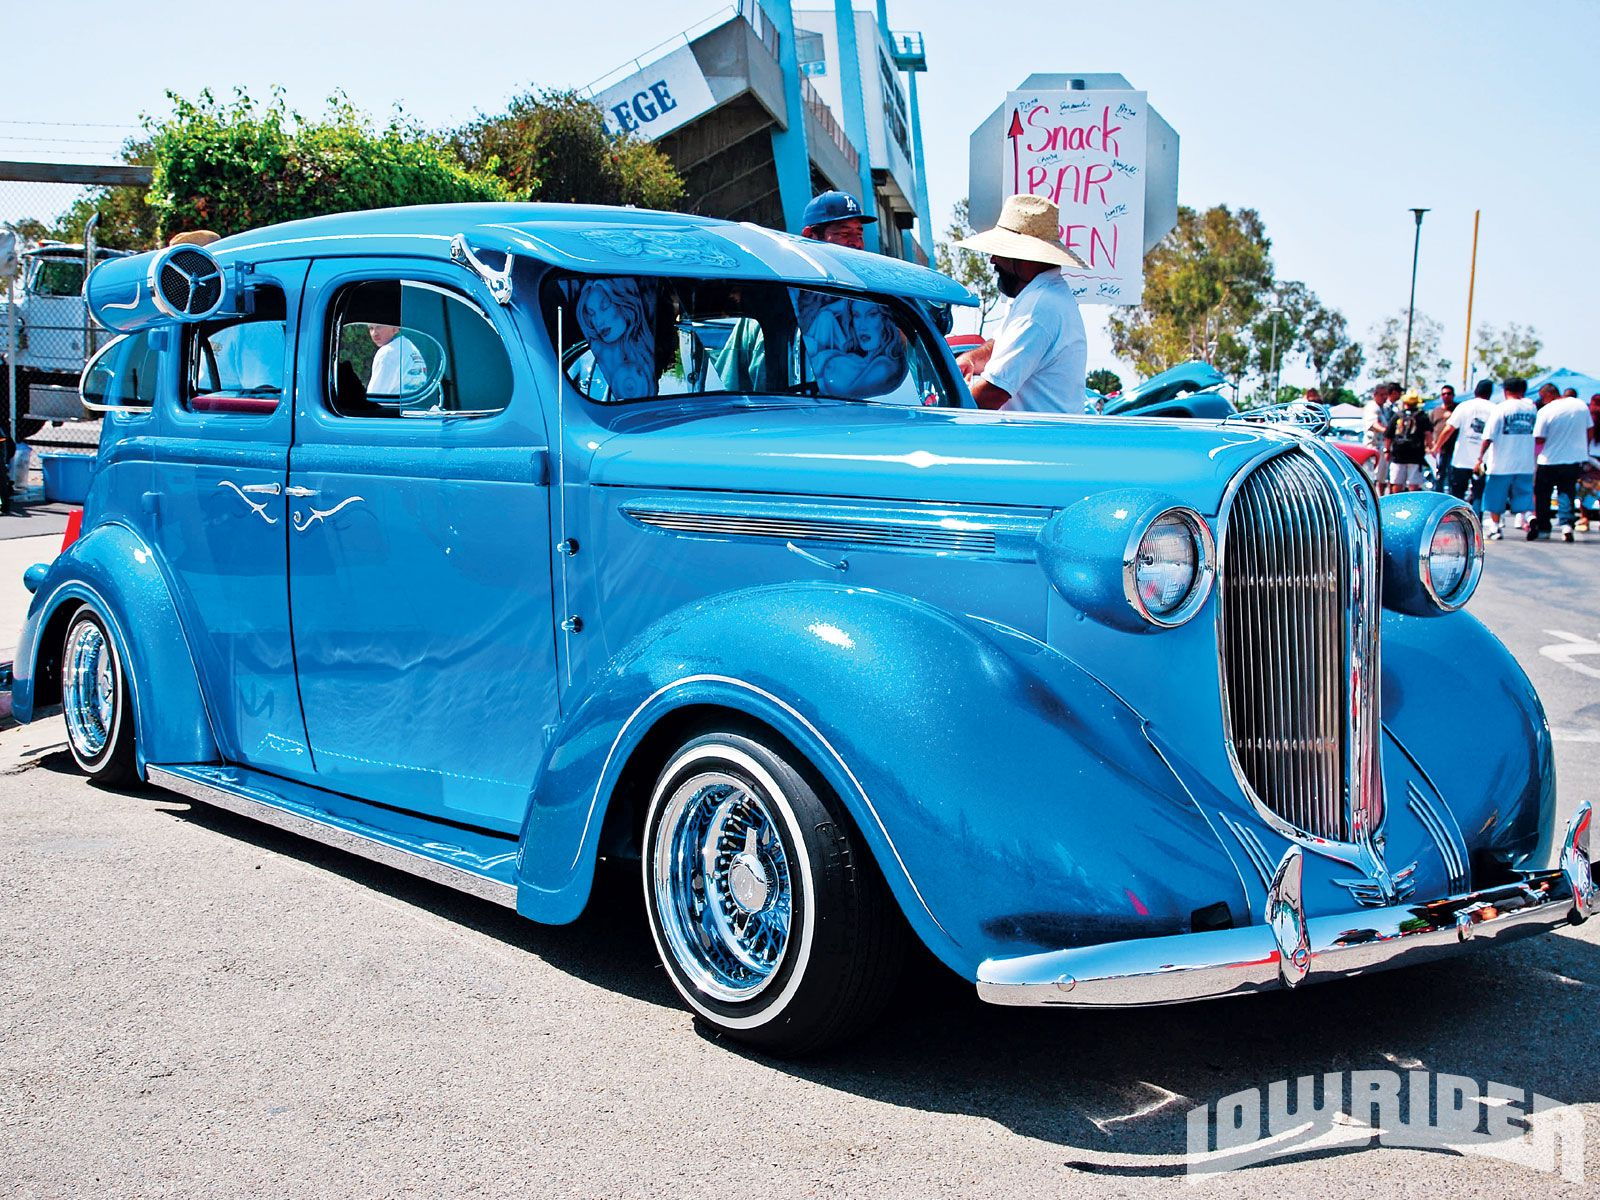 686 best riding low images on Pinterest | Chevrolet trucks, Chevy ...